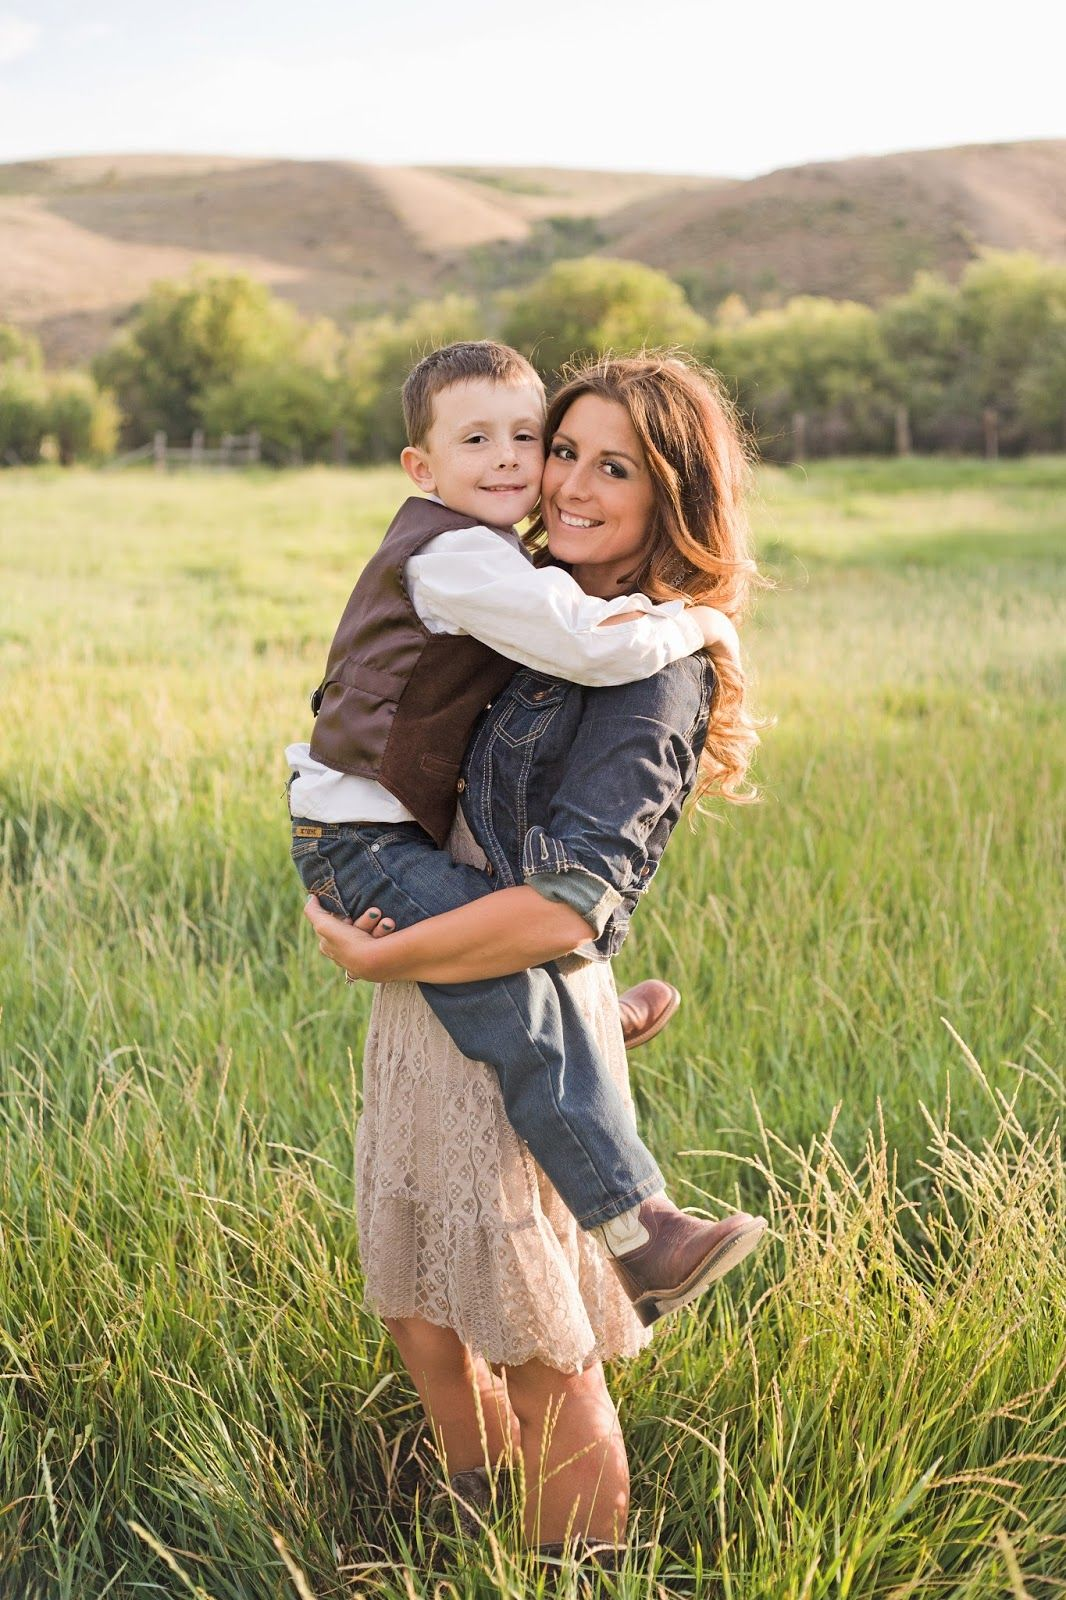 MOTHER AND SON FORBIDEN LOVE  Mother and son photo. Family photography. Photography poses. Country photos. Western photography